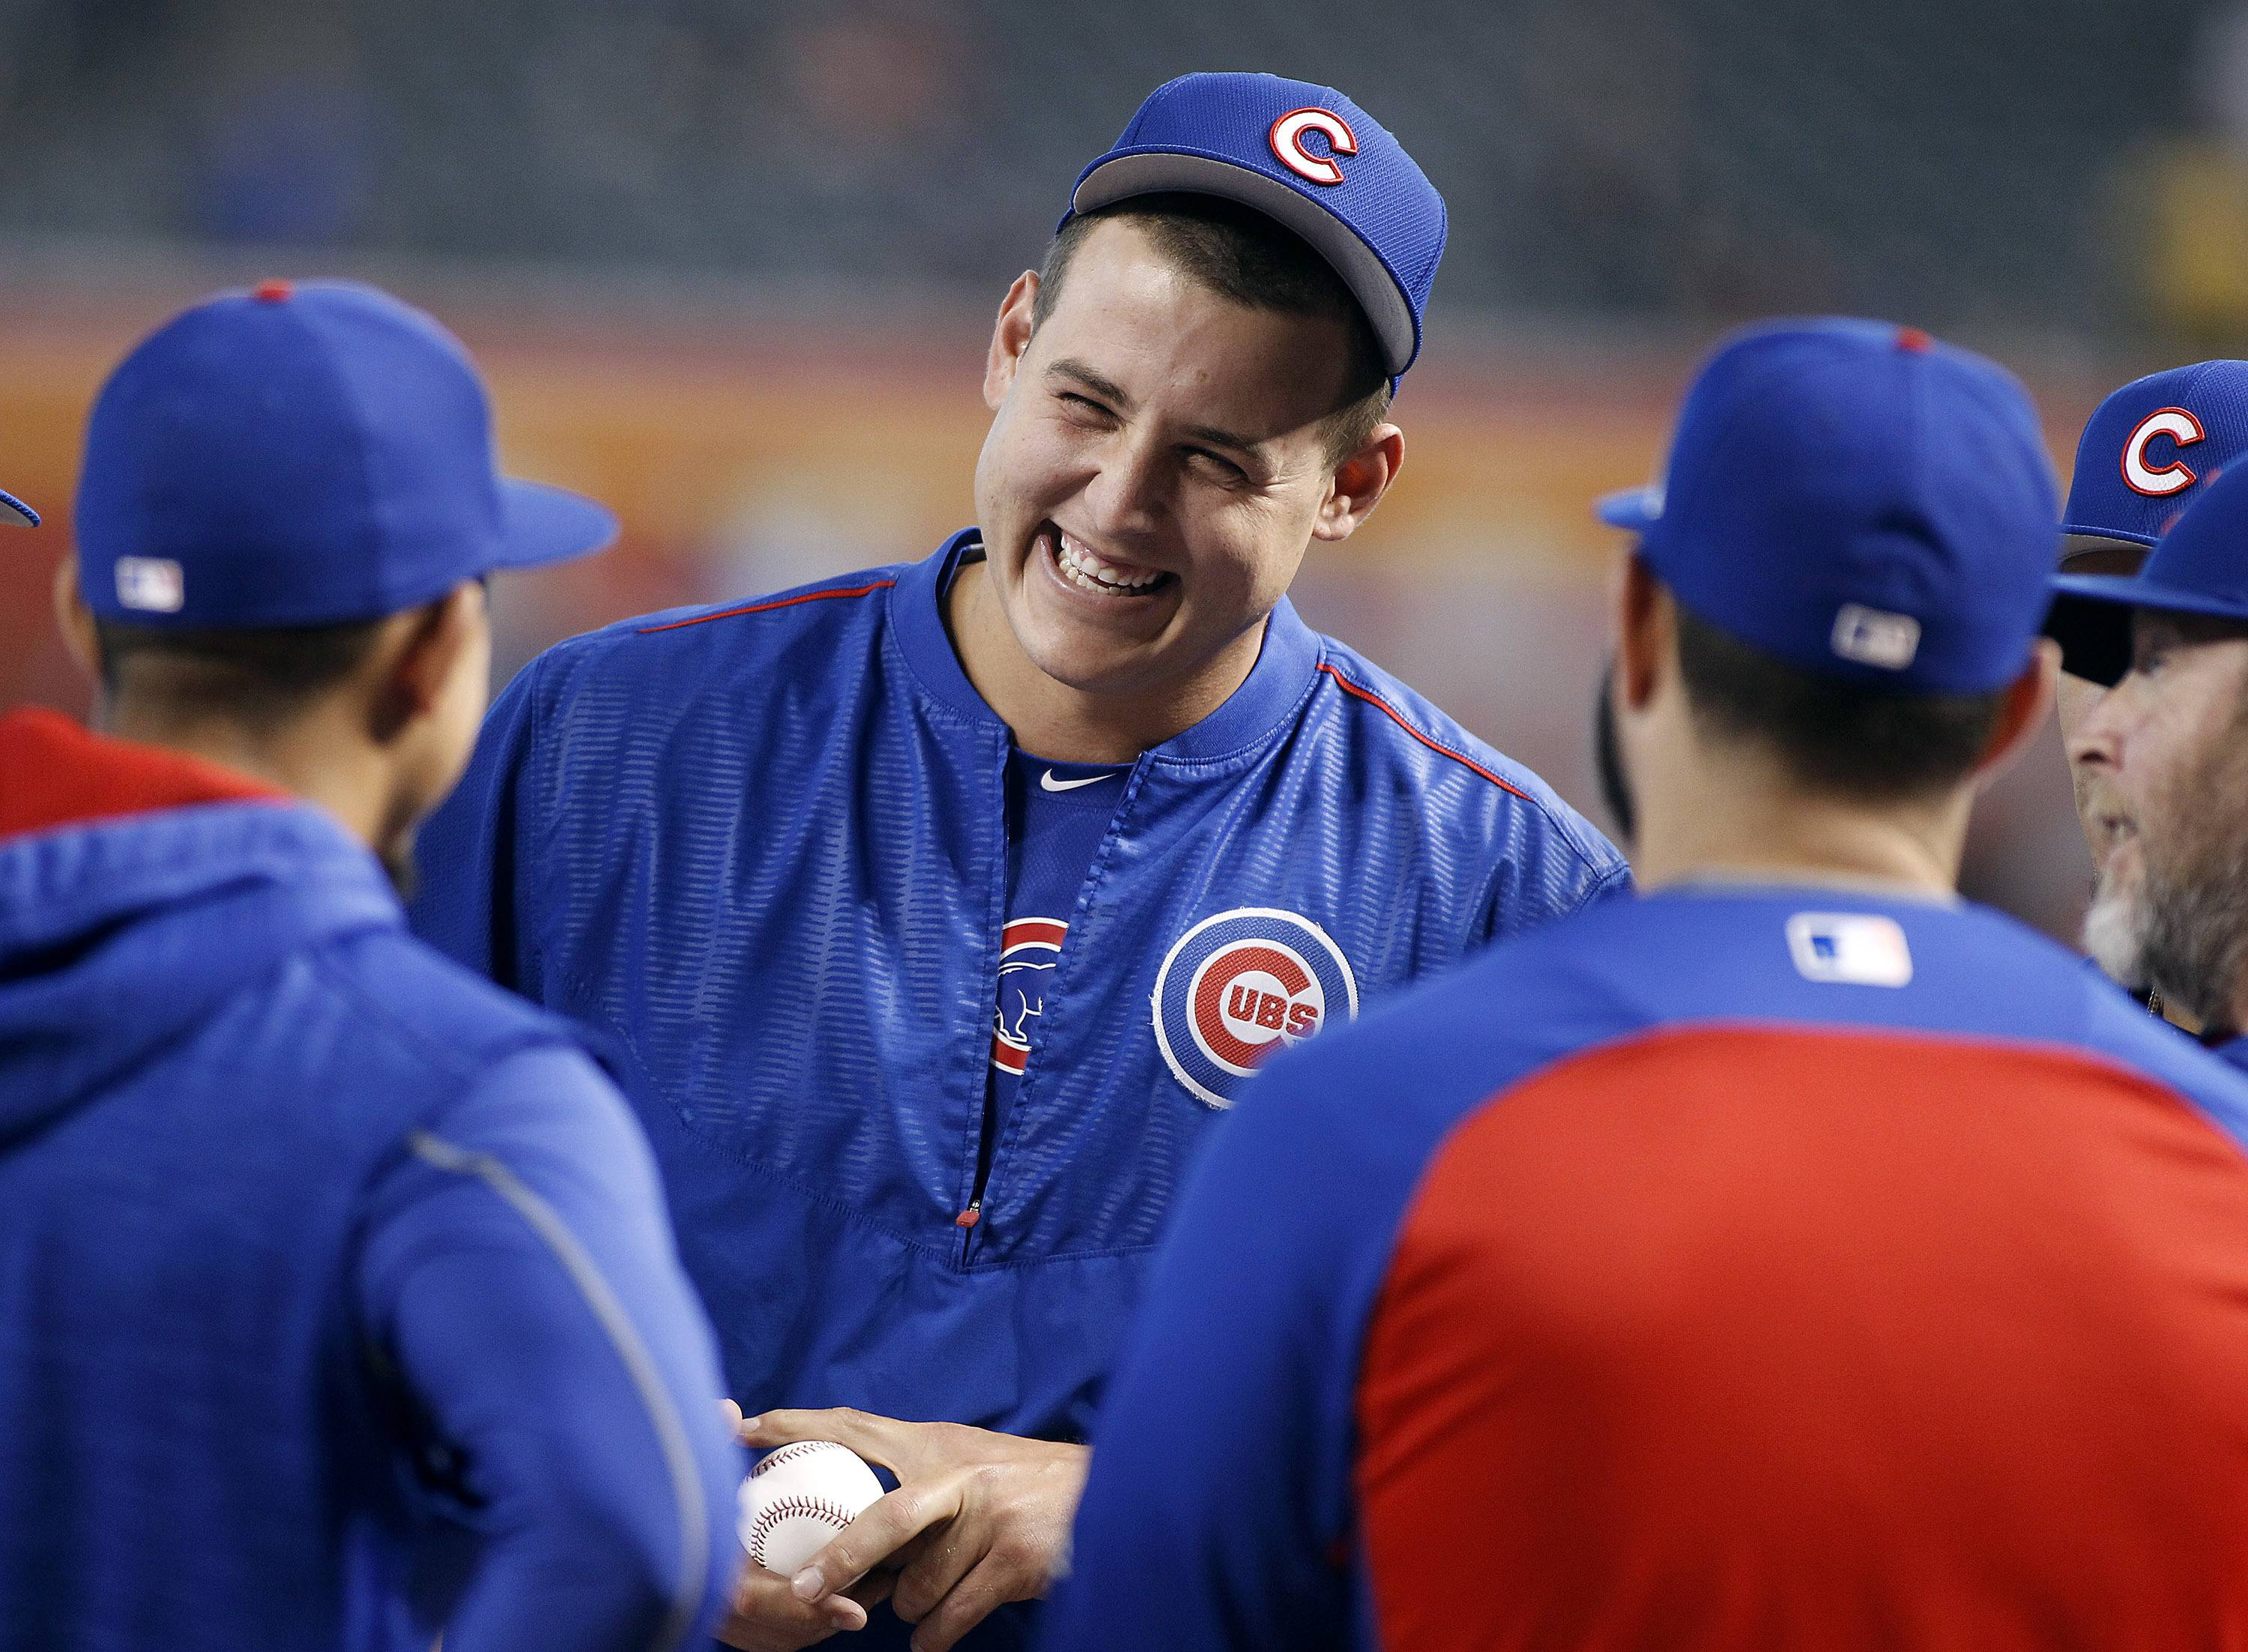 Wisdom, knowledge, perspective: What Rizzo has gained as he approaches 30